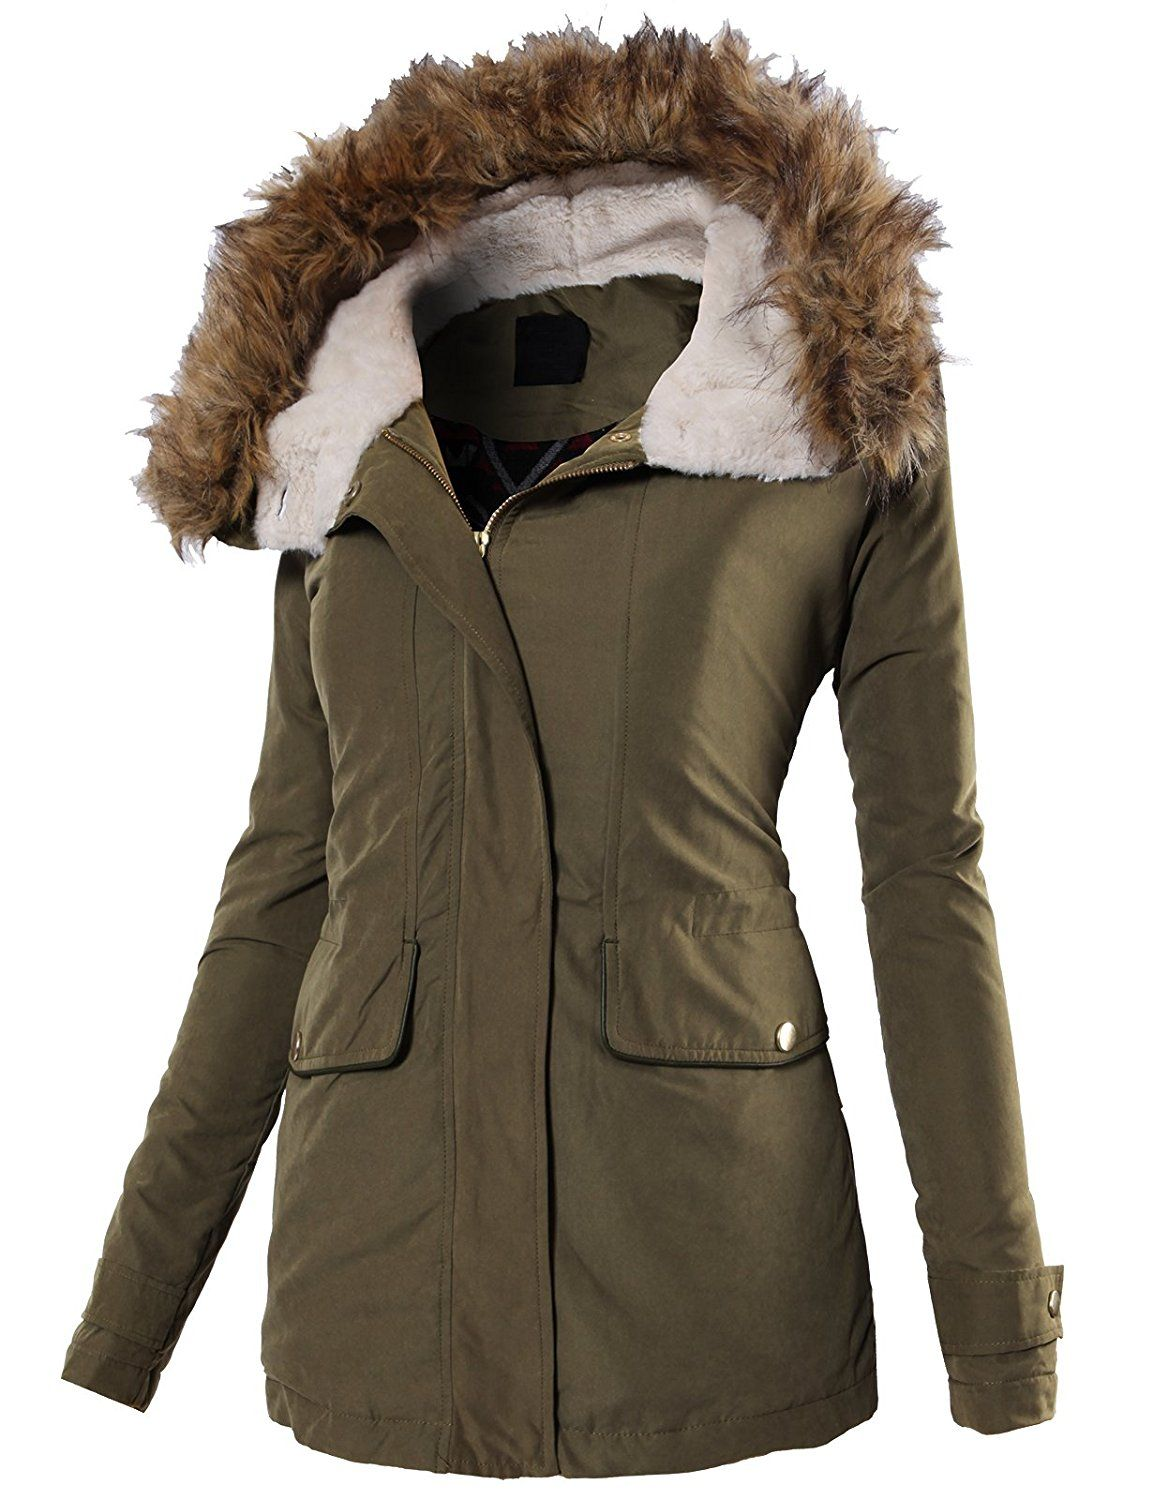 H2H Womens Classic Hooded Warm Winter Coats Faux Fur Lined